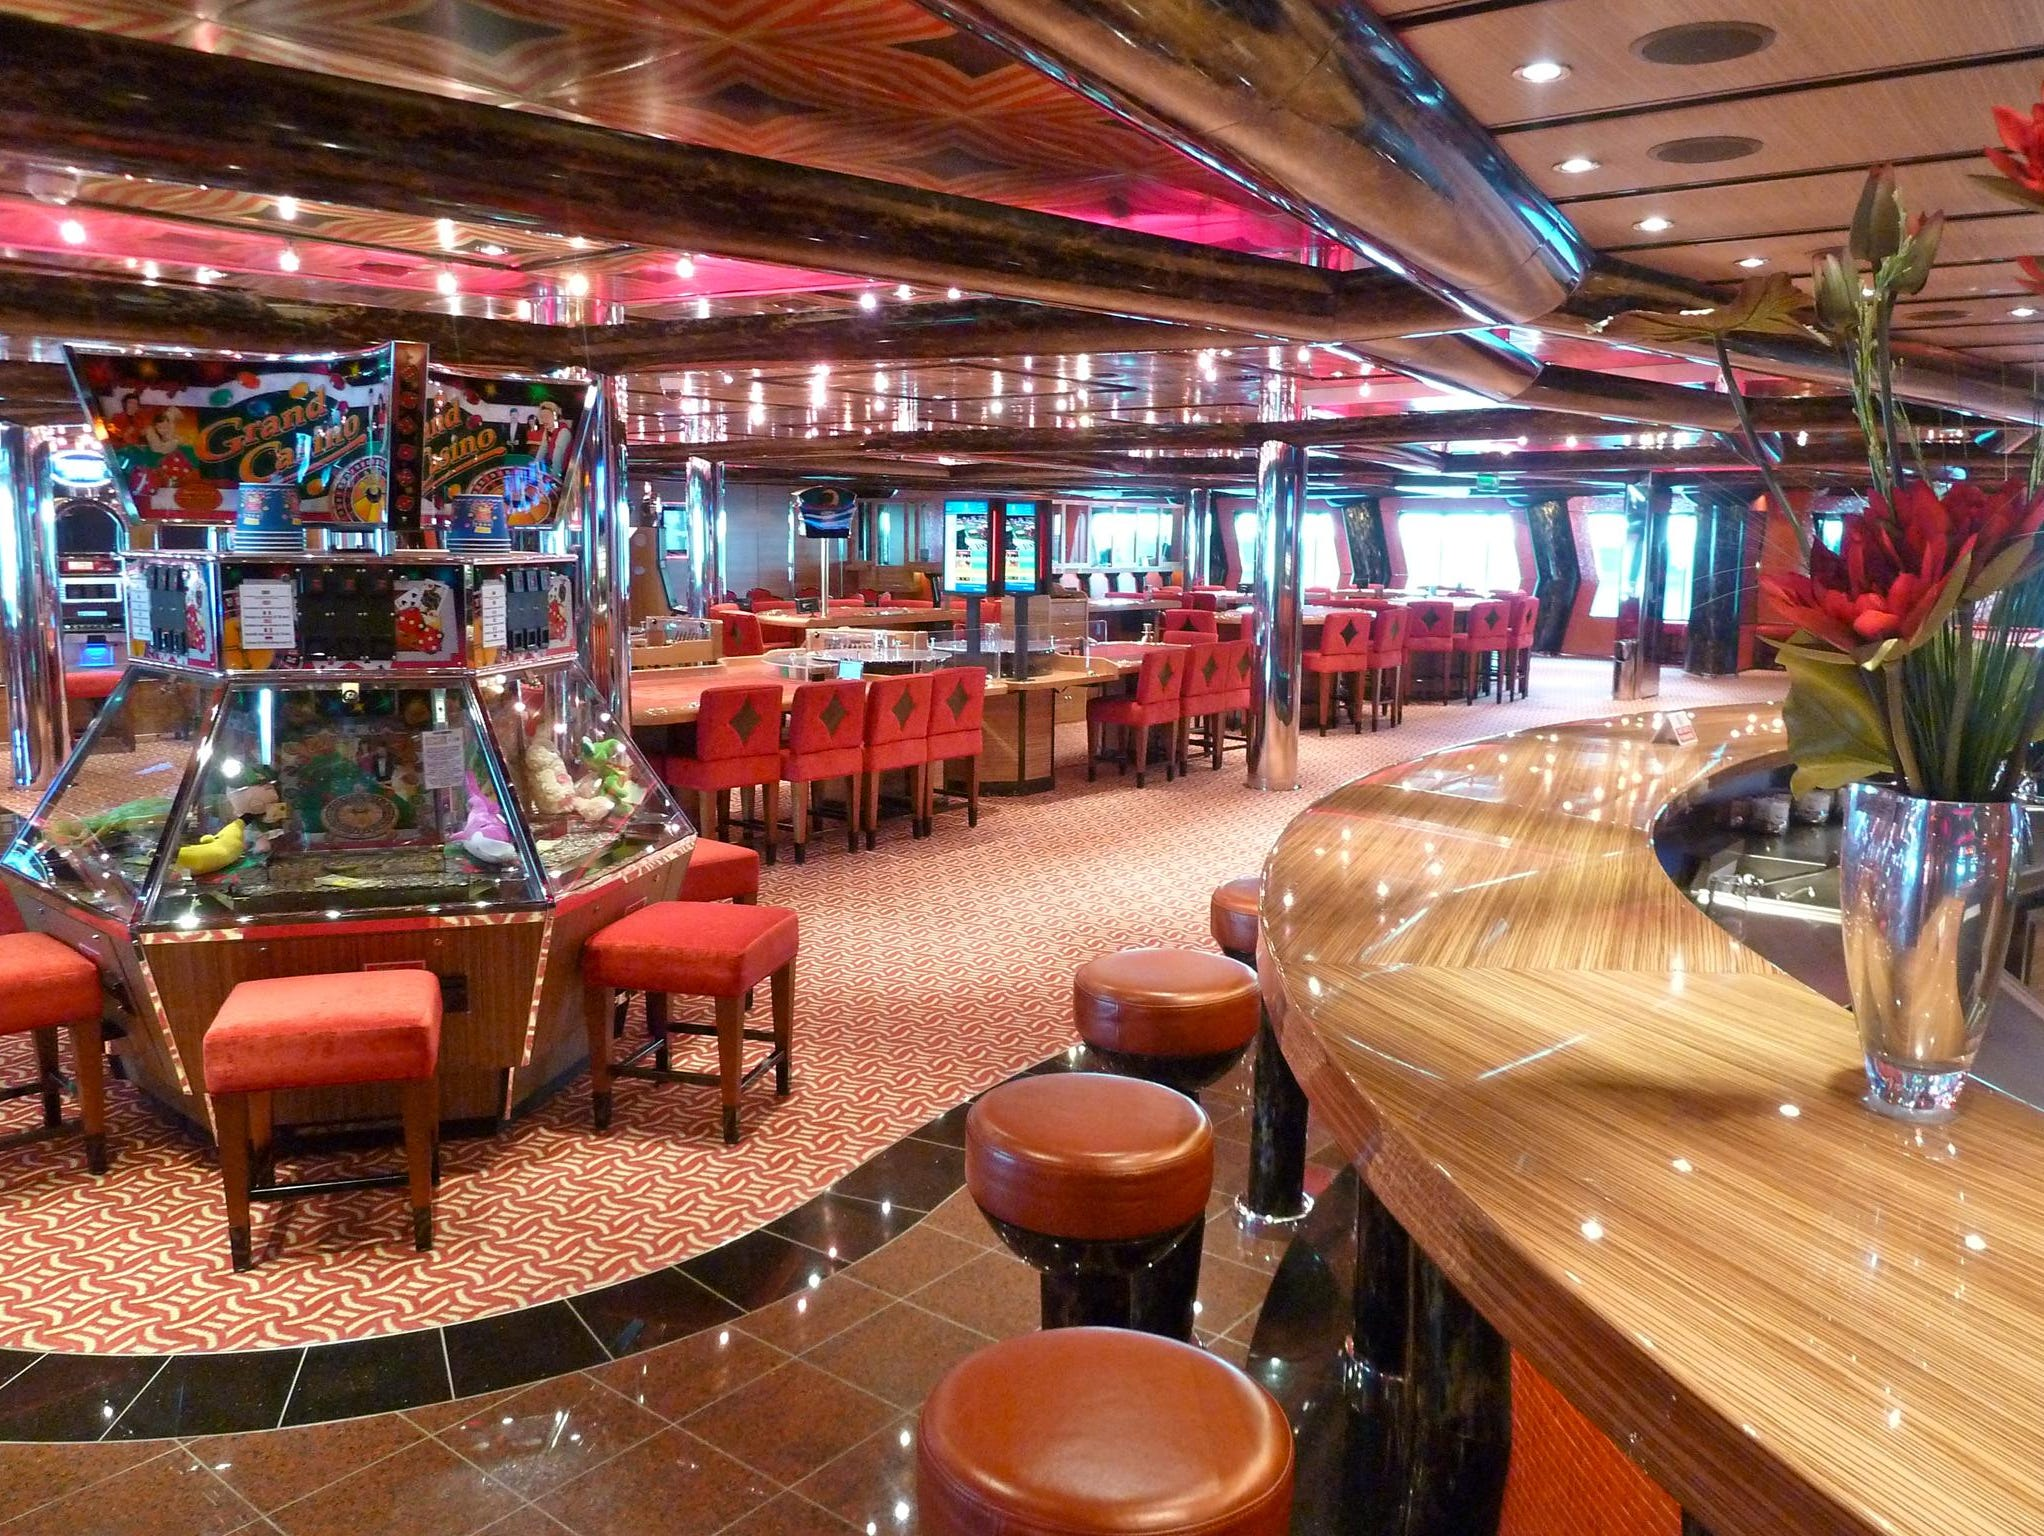 Casino Gaius follows the Grand Bar Mirabilis. It has its own bar and a vast array of gaming tables and slots. This is a port-facing view.